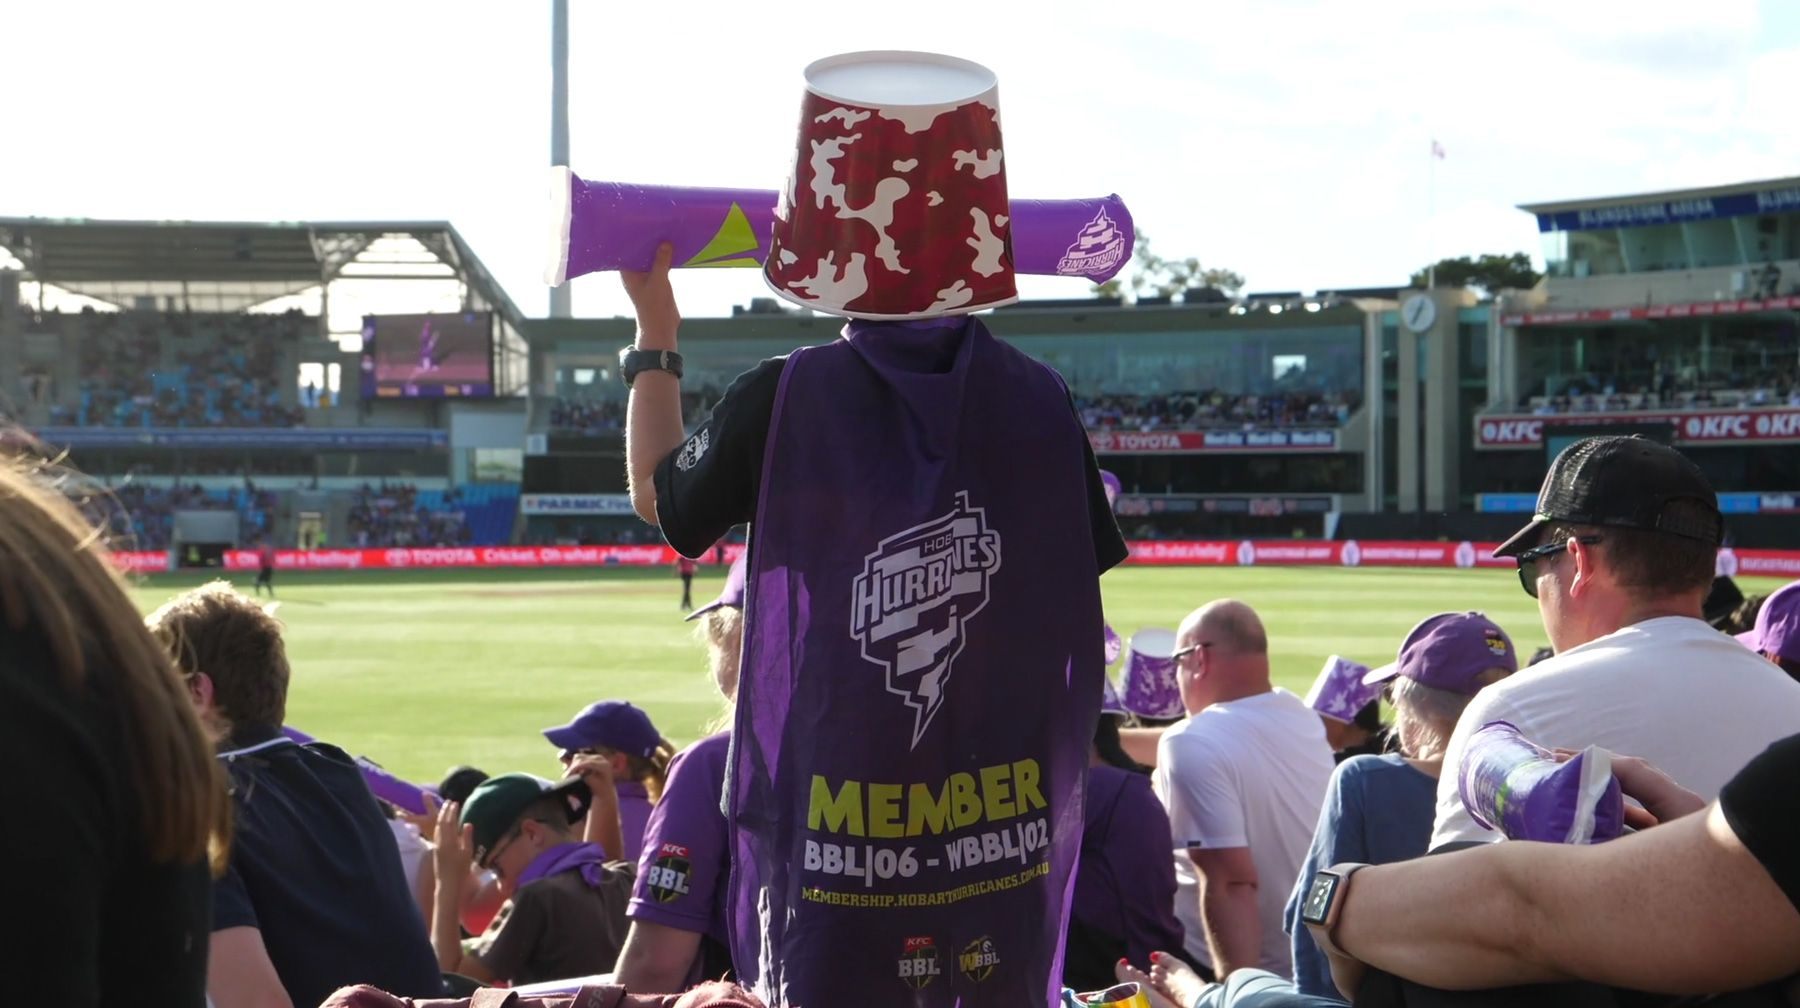 Child standing watching big bash game